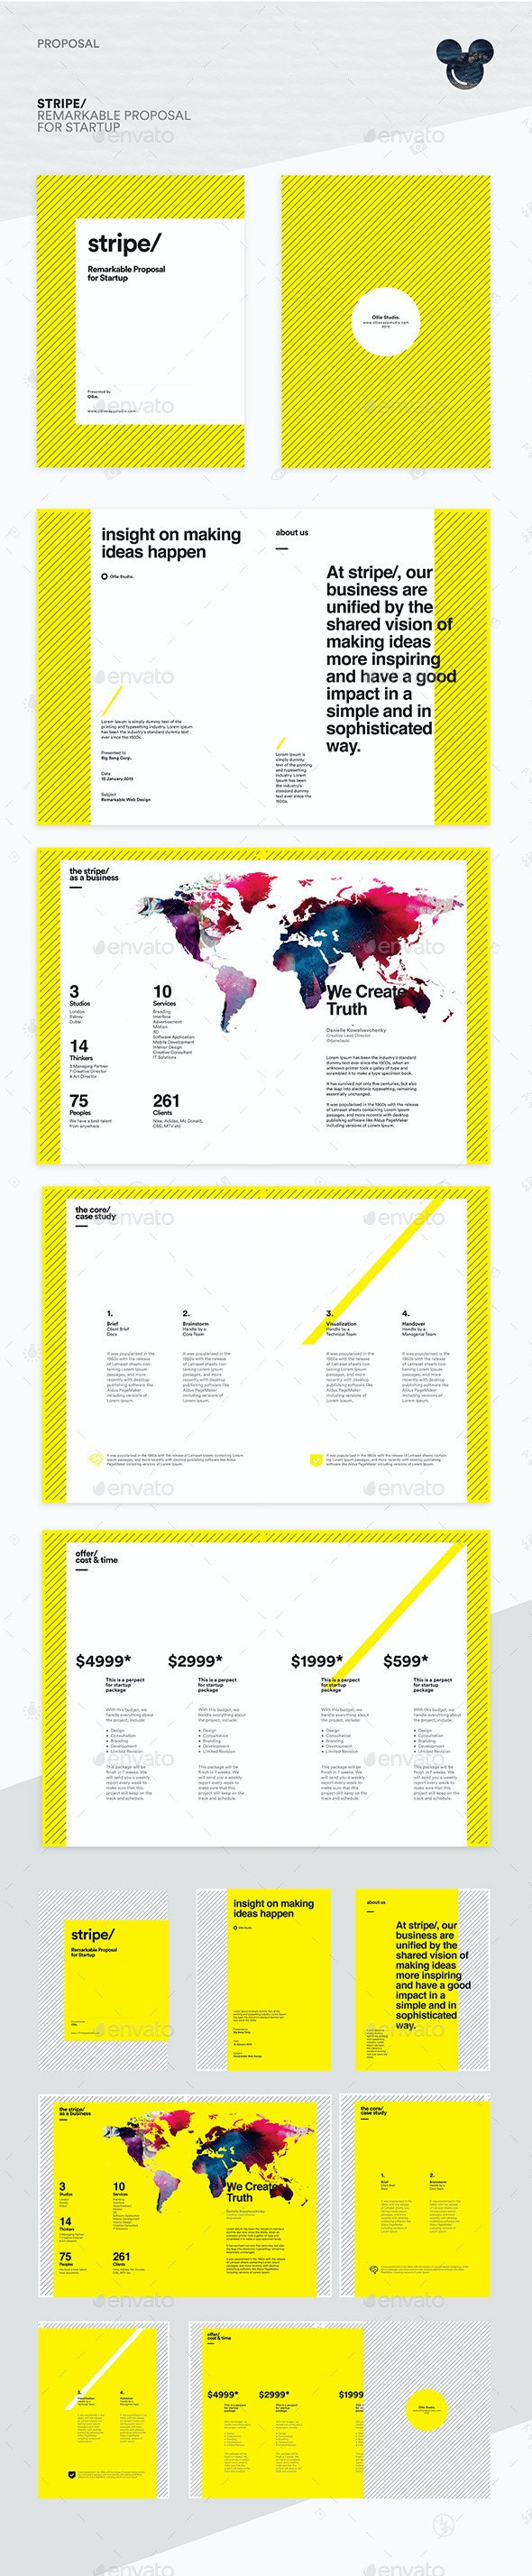 Stripe - Startup Proposal Template - Proposals & Invoices Stationery